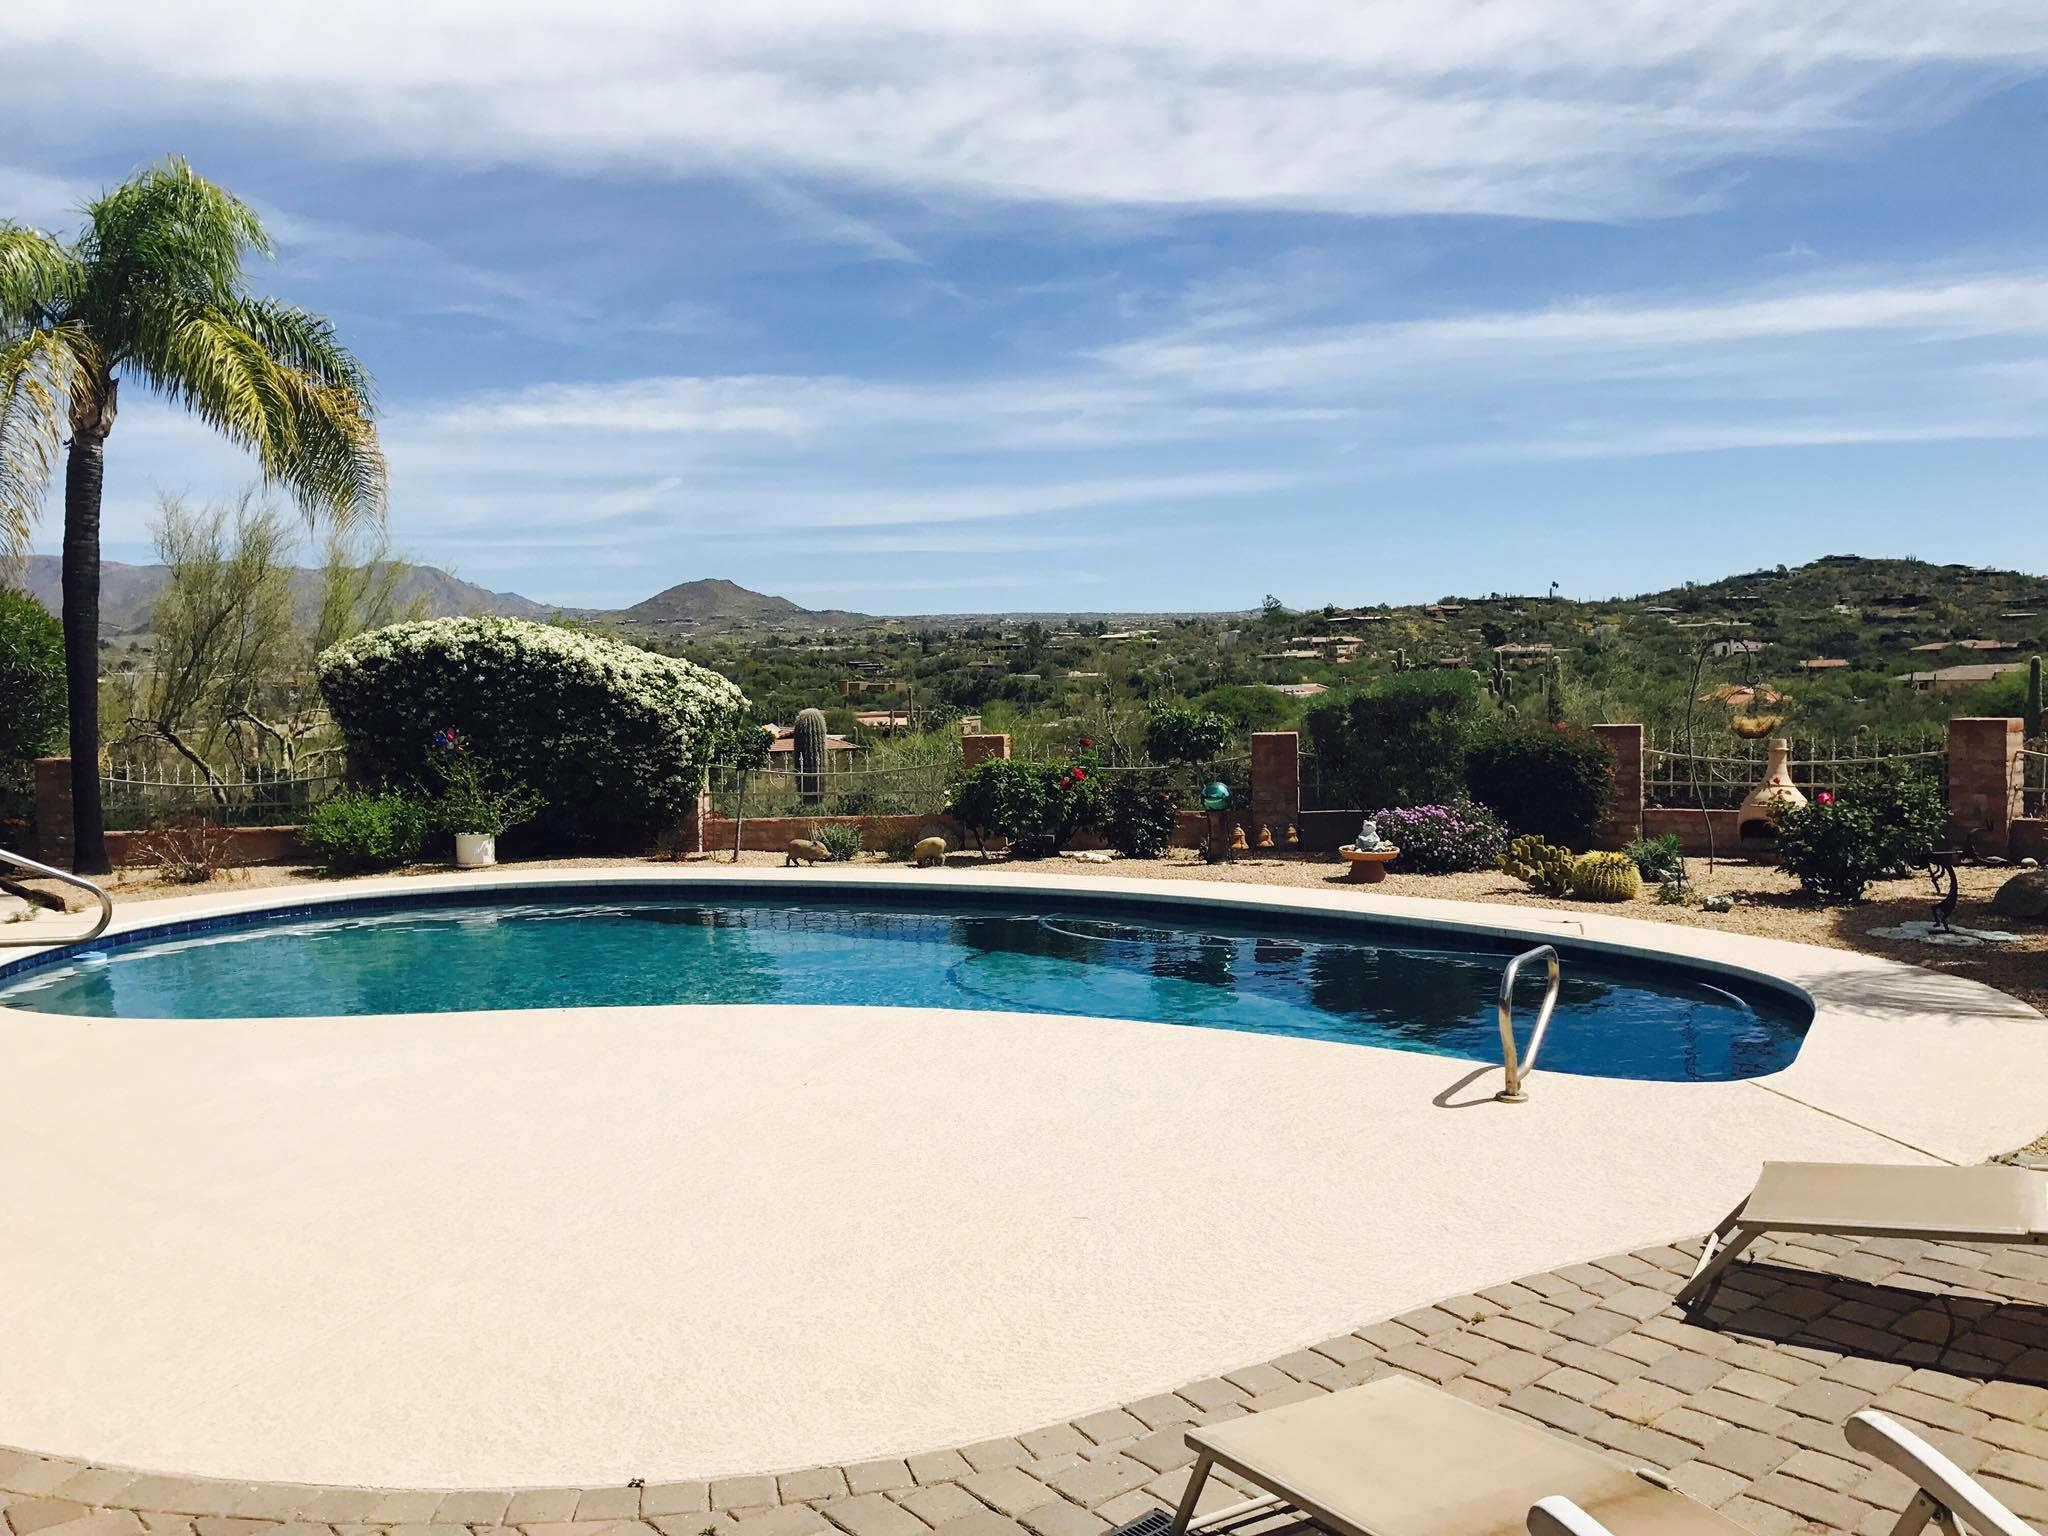 Arizona Pool And Spa Renovations Rio Bravo Arizona Pool